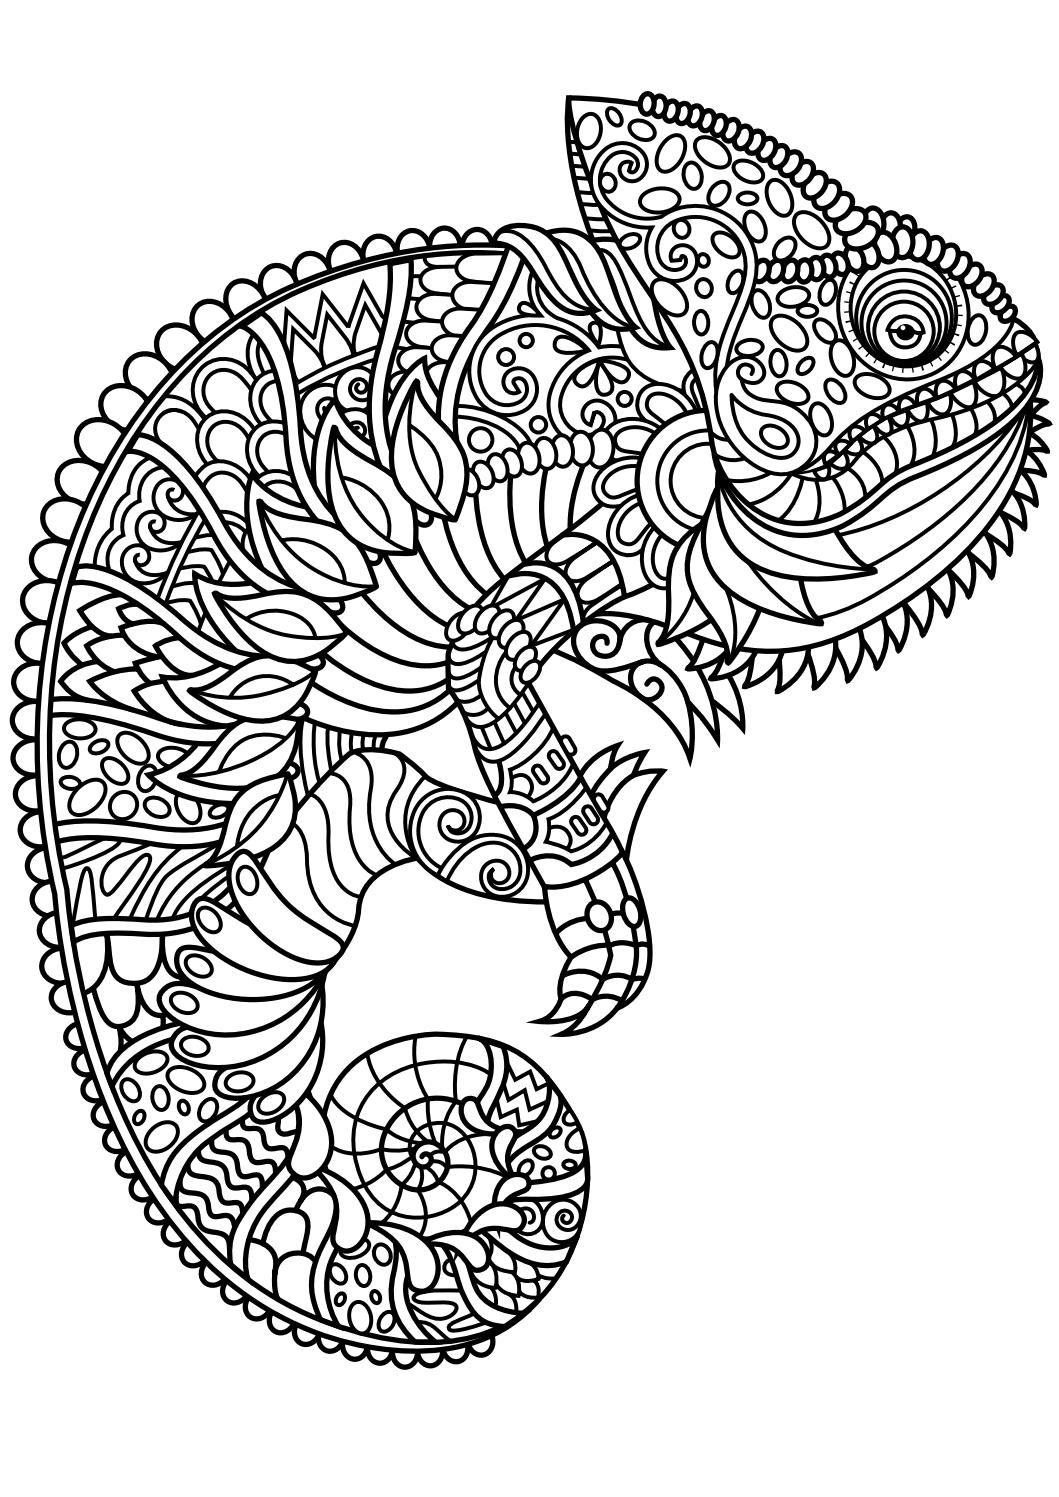 Free printable sea turtle adult coloring page Download it in PDF